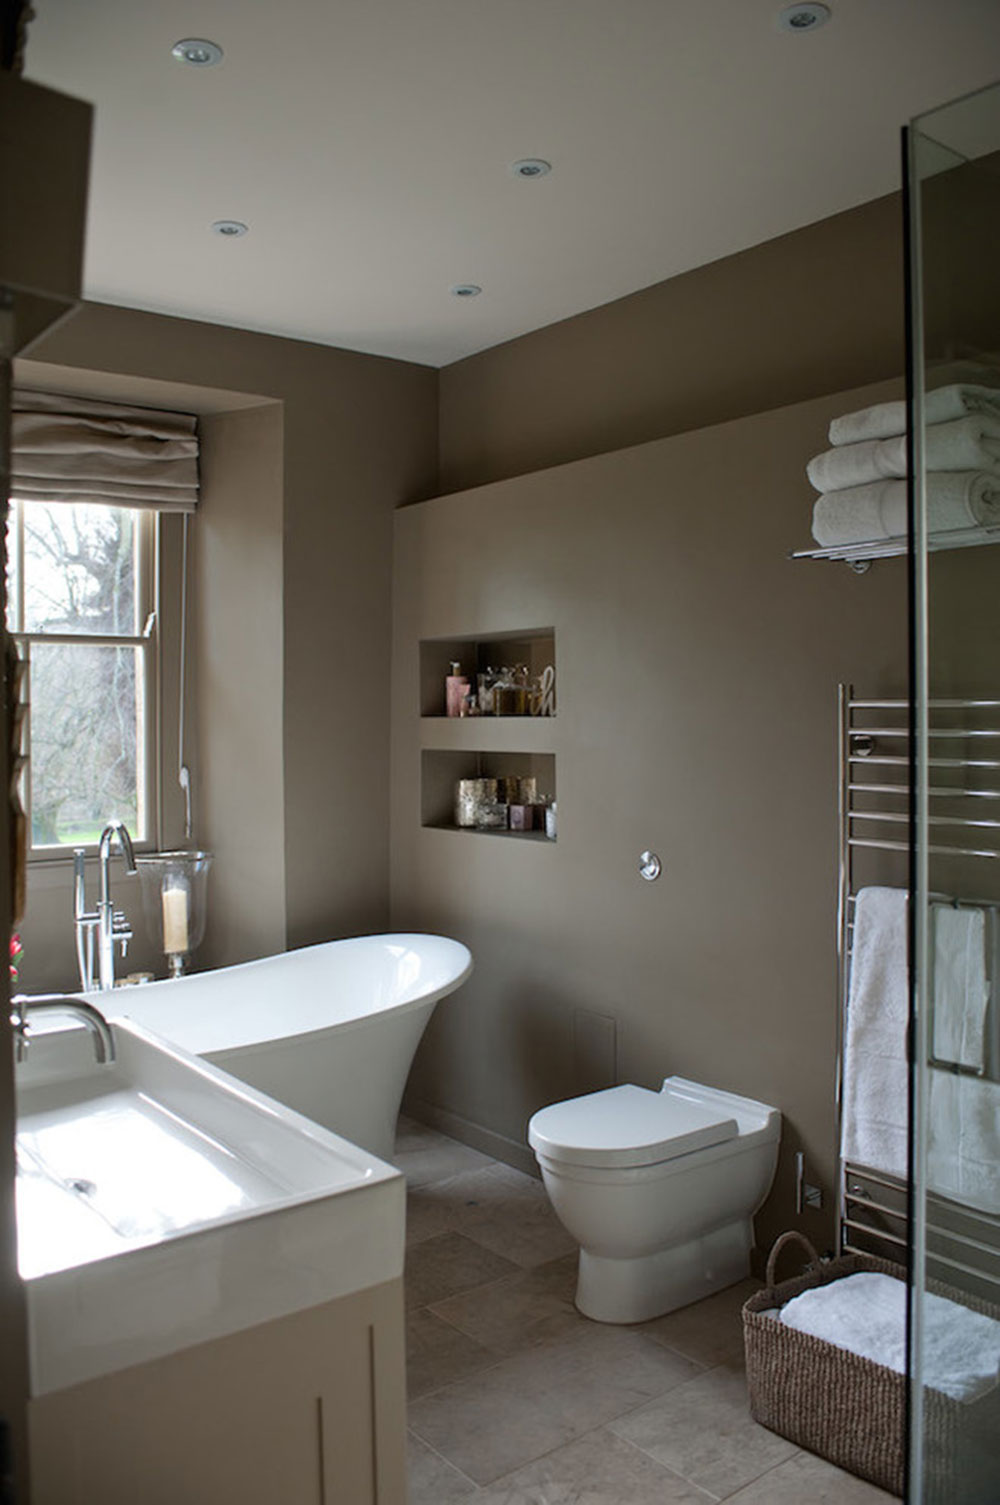 Home Remodeling And Renovation Ideas8 Home Remodeling And Renovation Ideas